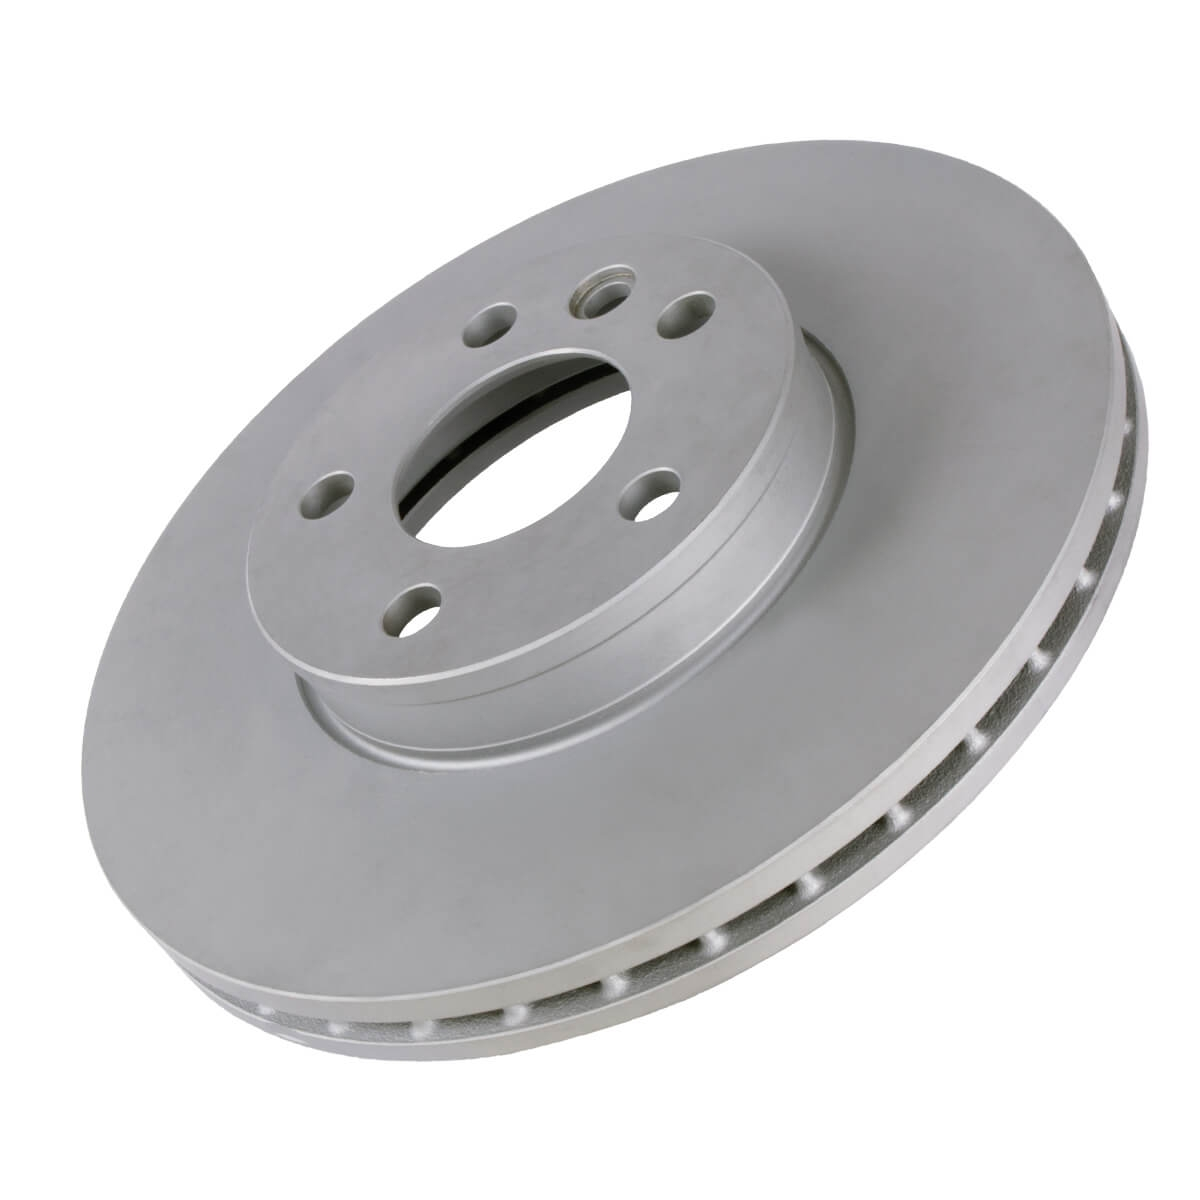 HYUNDAI PONY/EXCEL Brake Disc